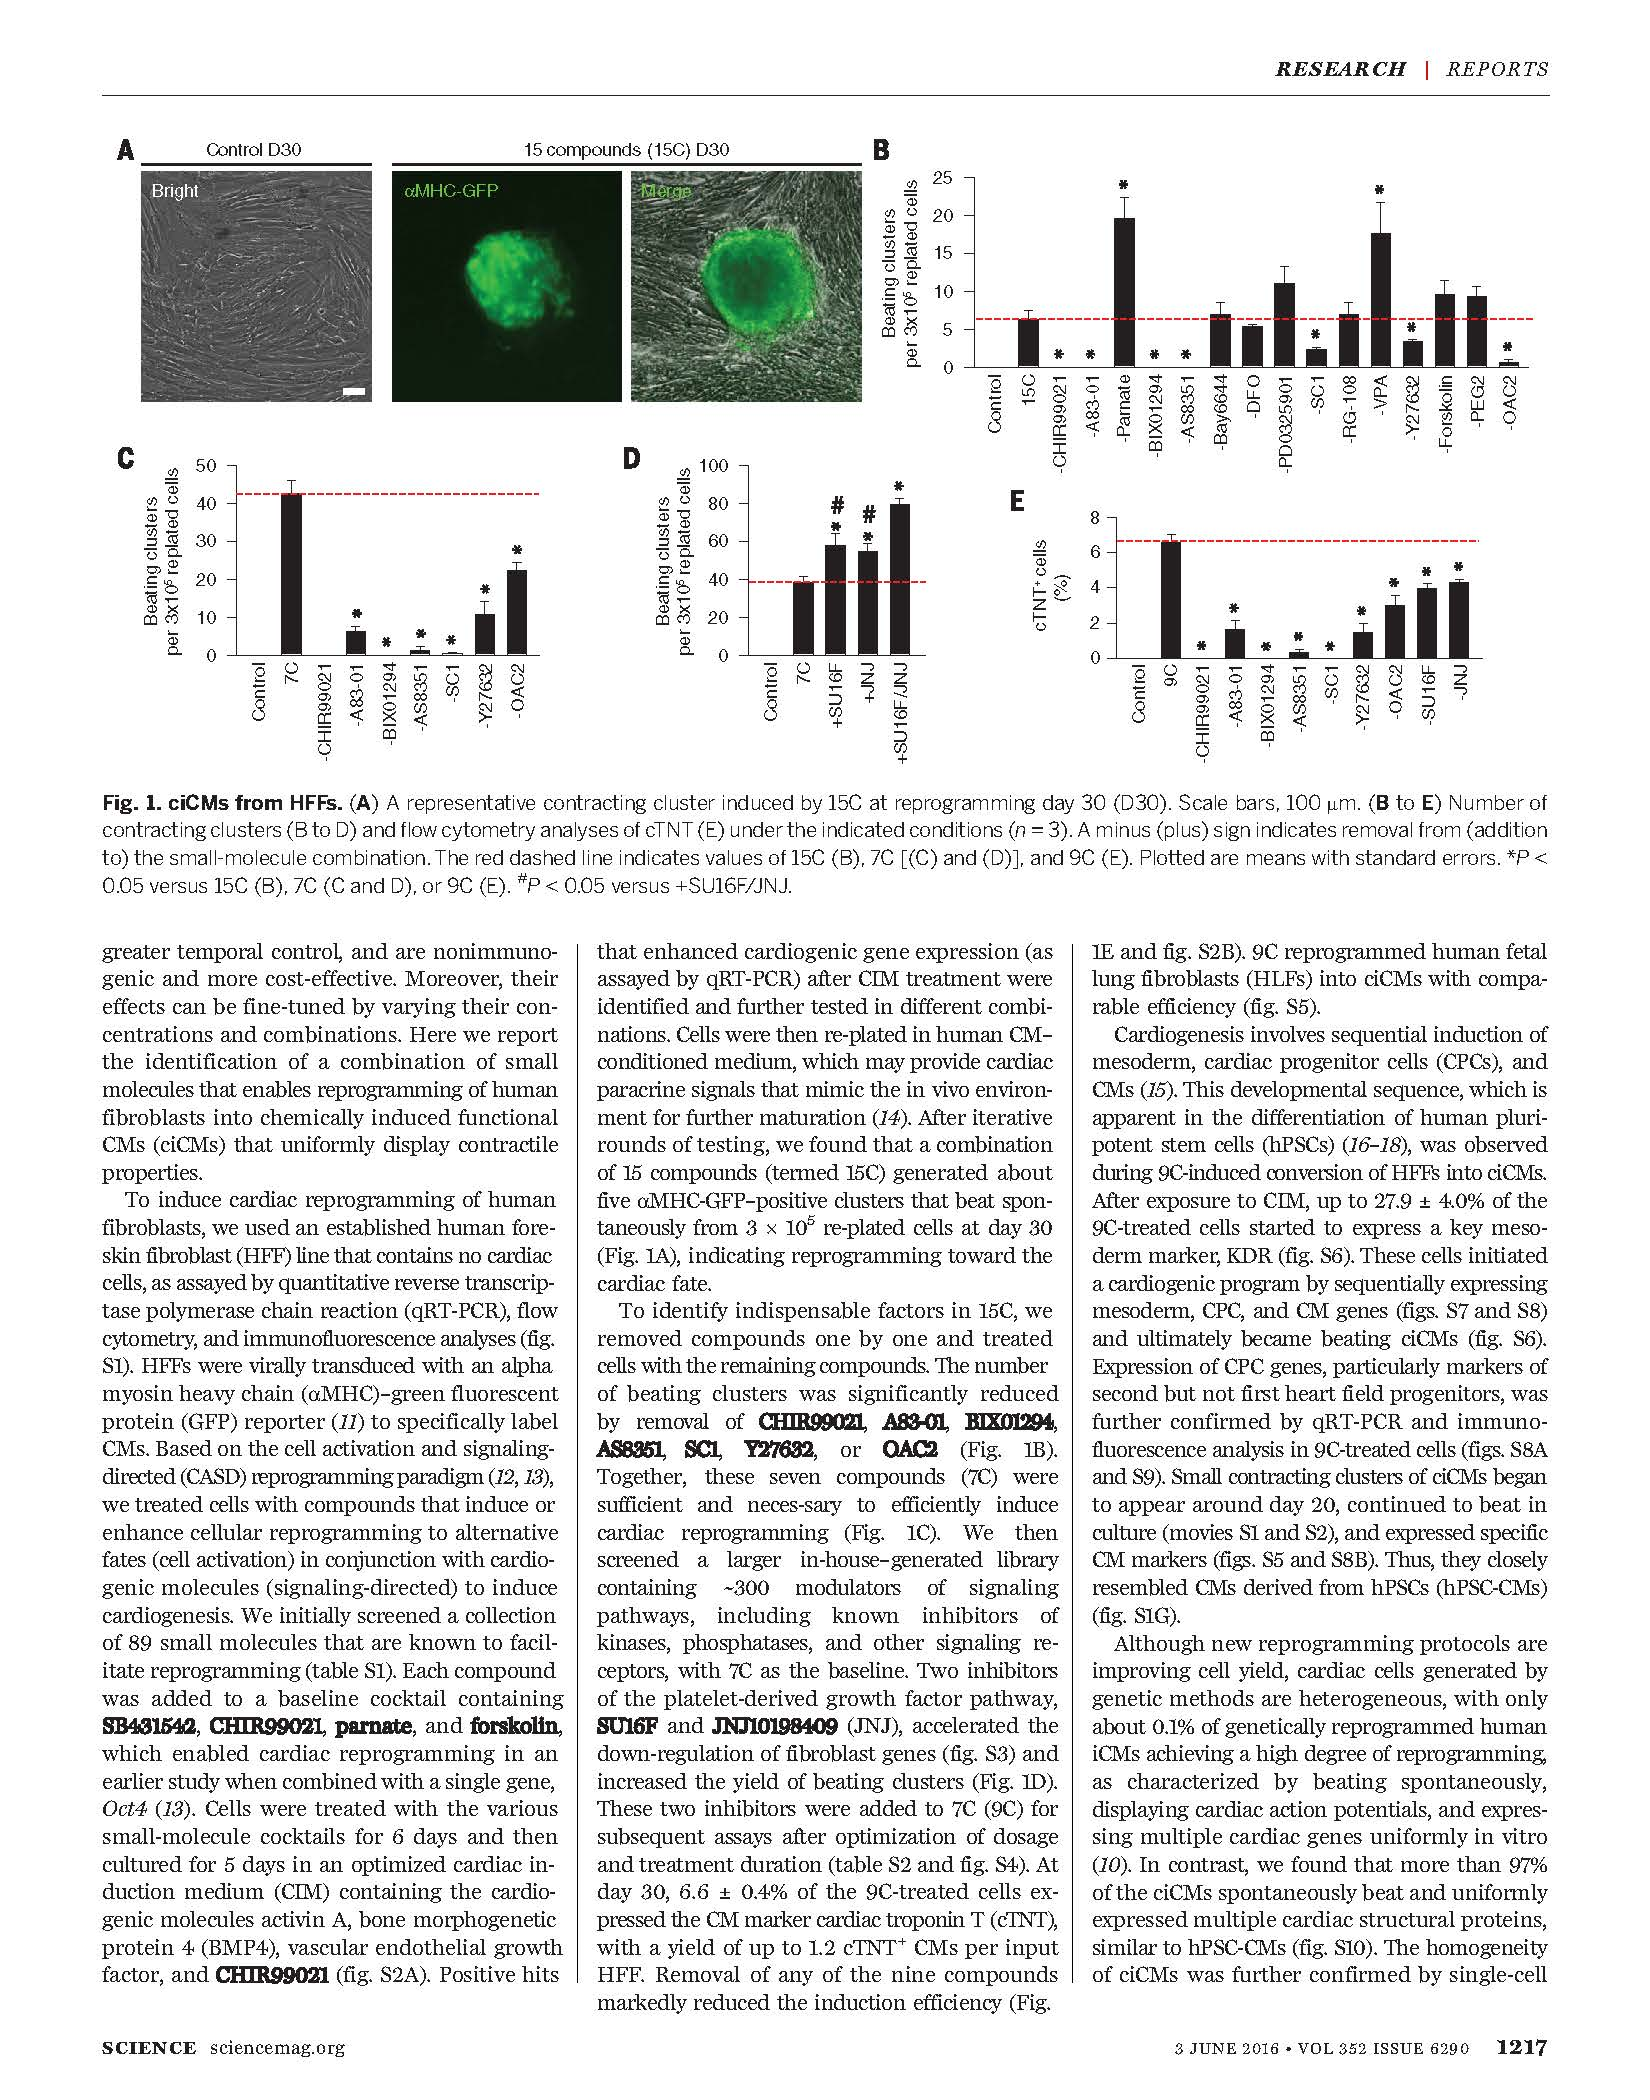 Conversion-of-human-fibroblasts-into-functional-cardiomyocytes-by-small-molecules-2.jpg